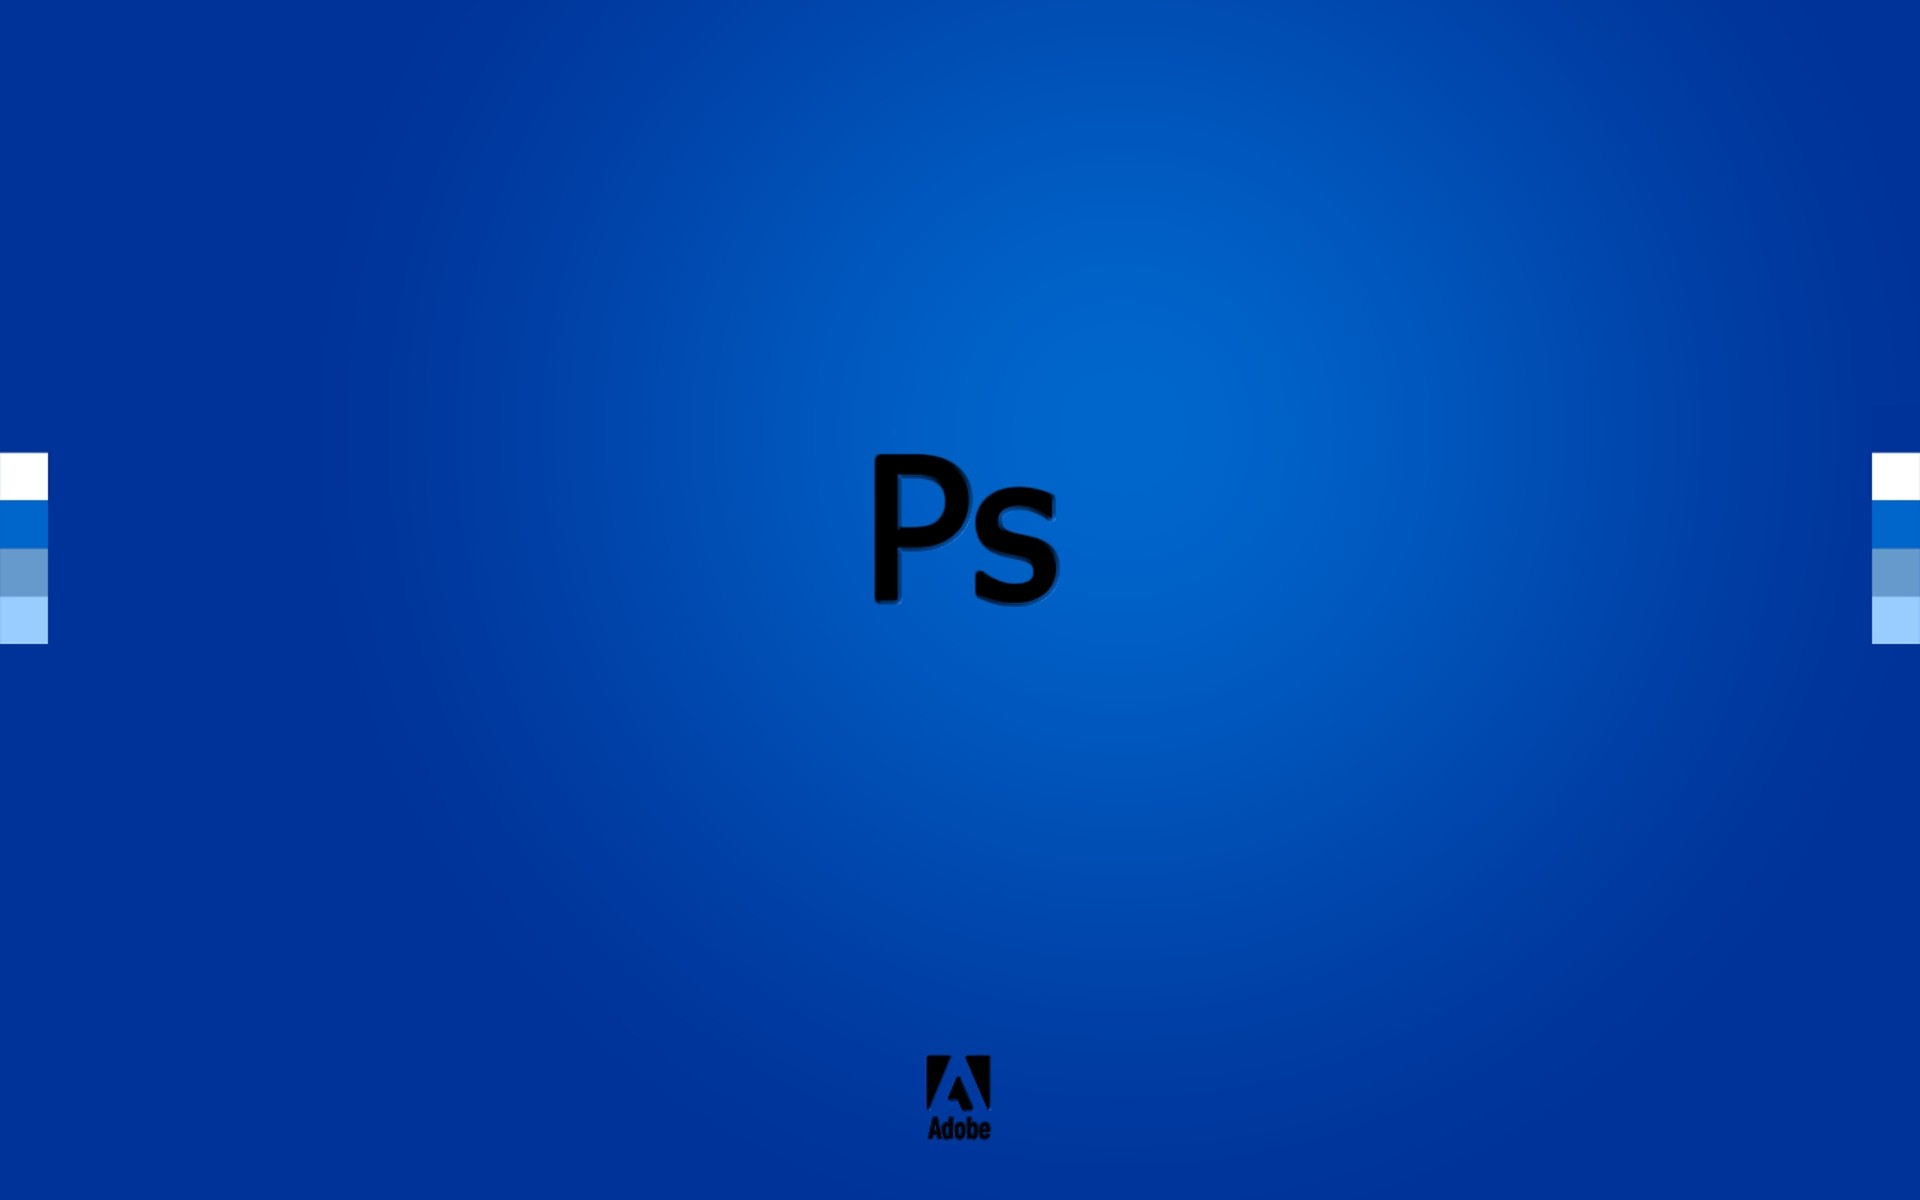 photoshop ps adobe фотошоп